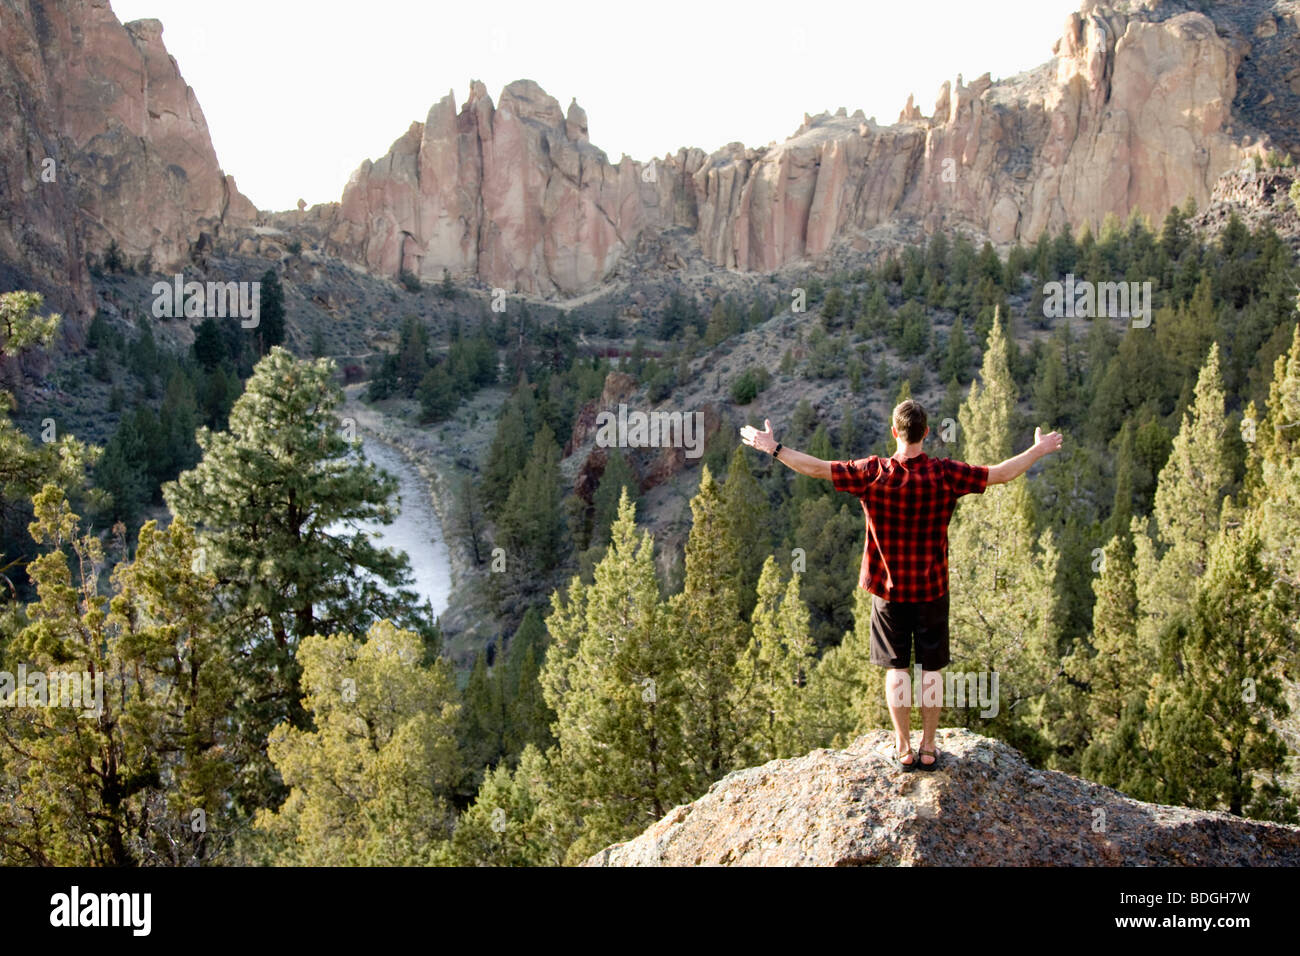 A man in a plaid shirt stands with his arms wide open overlooking the Crooked River Valley below. - Stock Image